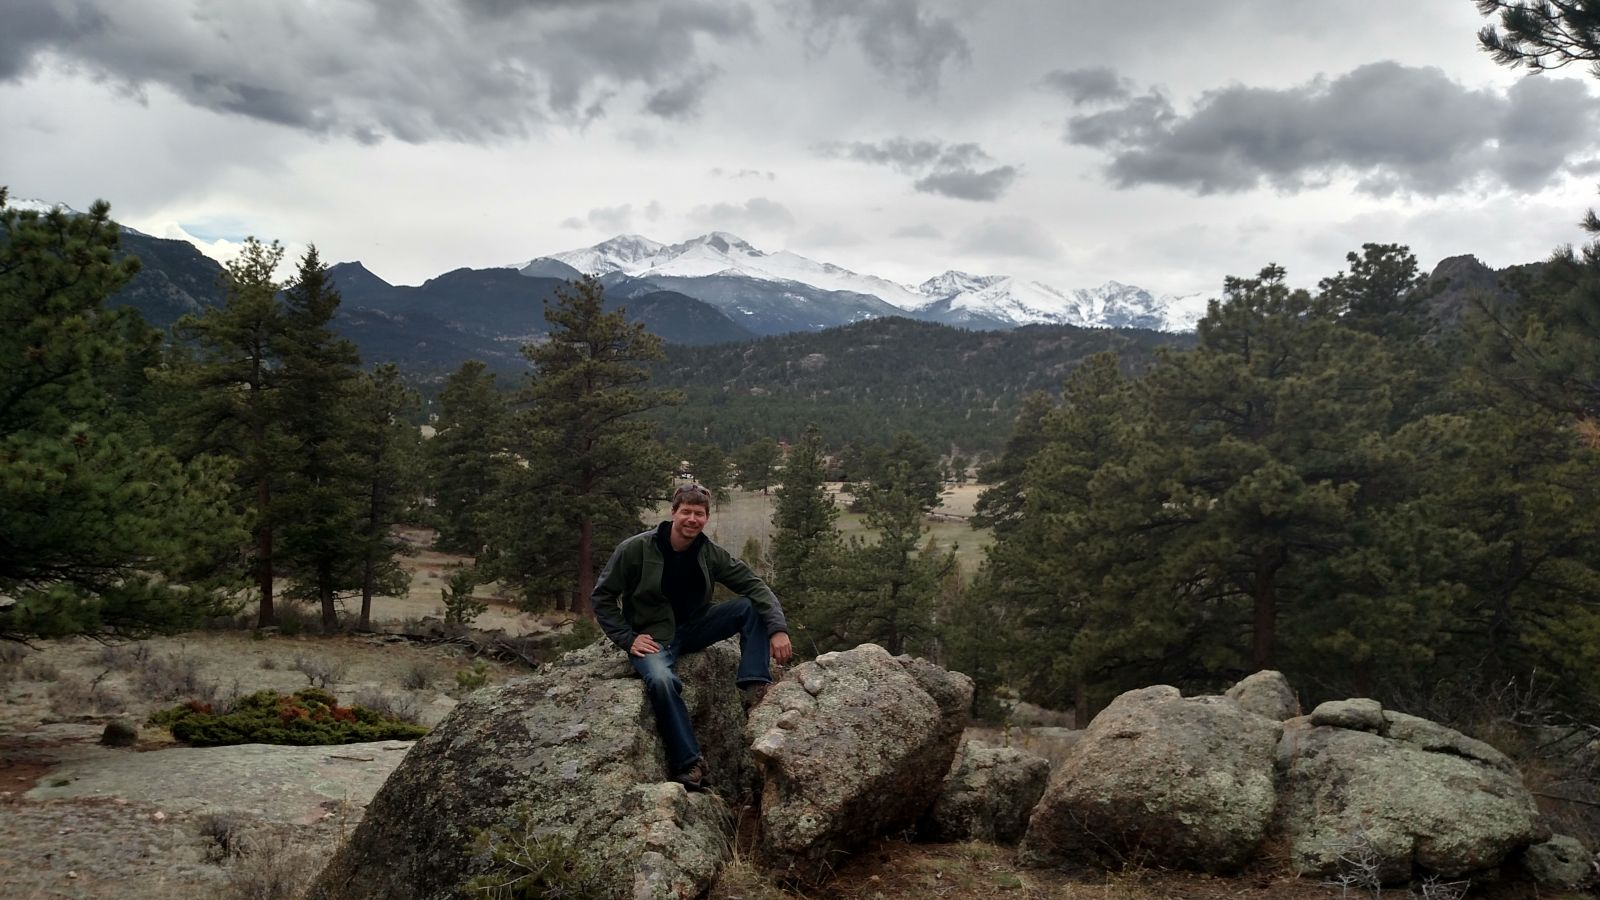 houses for sale estes park,log home estes park,estes park realtor,estes park real estate agent,homes for sale estes park,